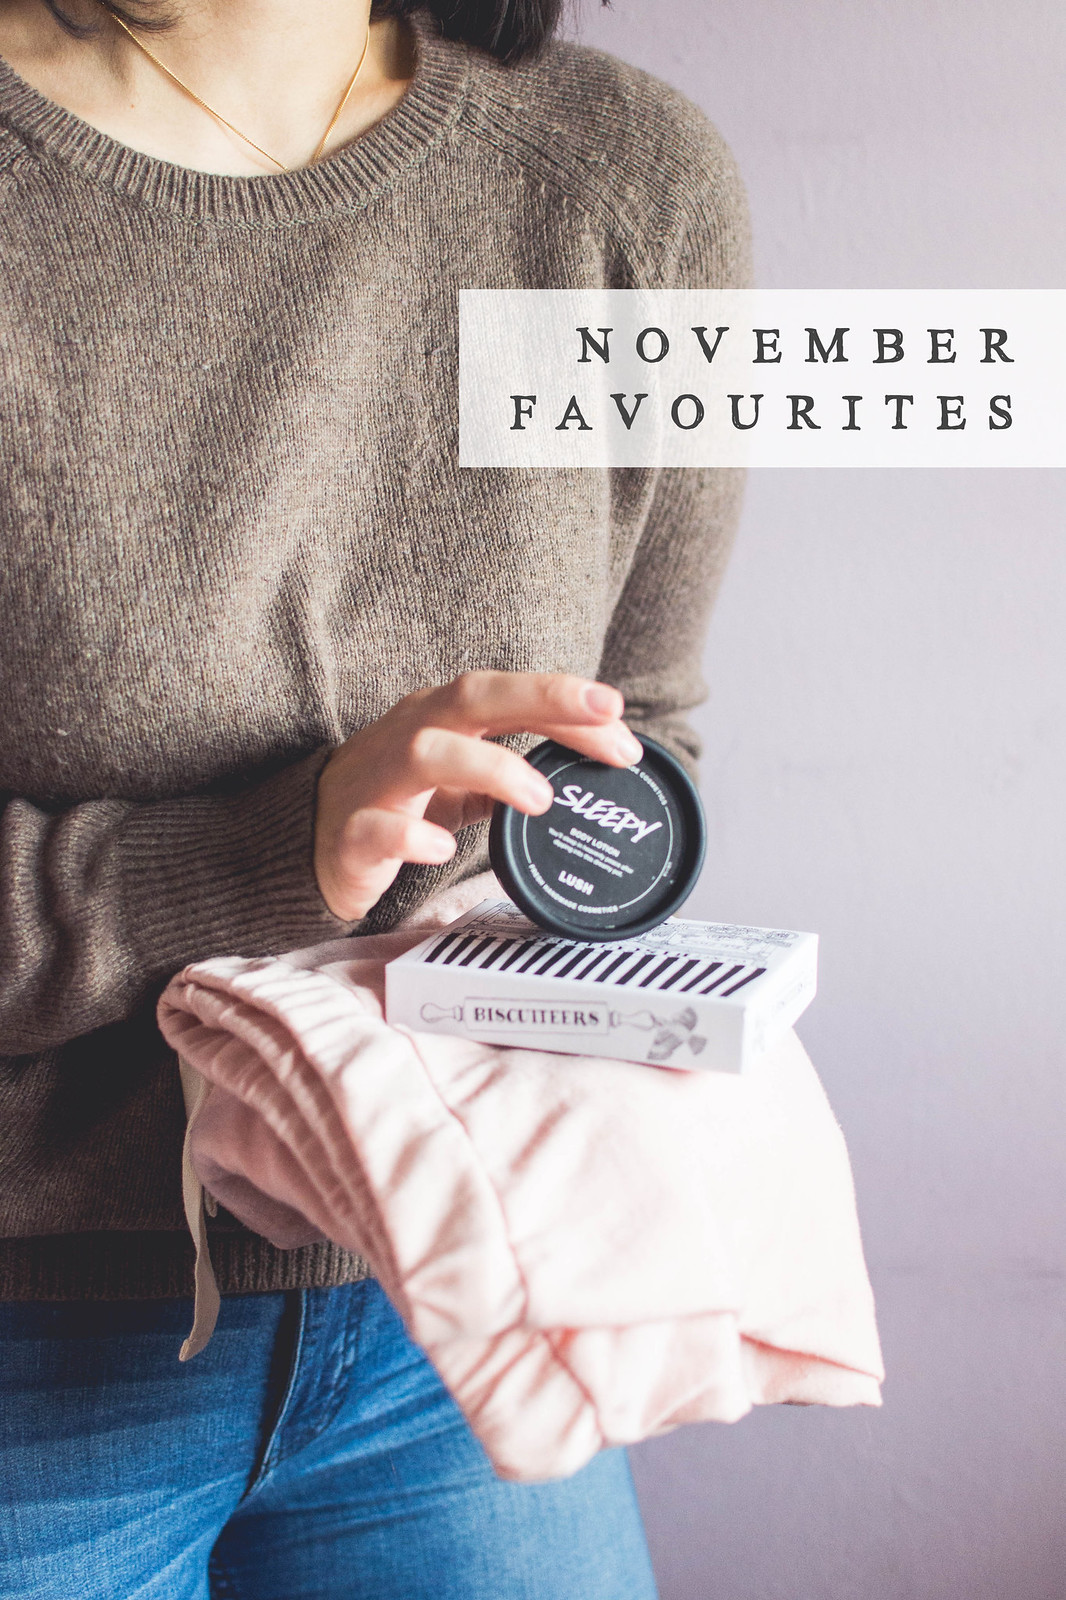 A few of my November favourites including life, natural beauty, food and calligraphy bits and bobs.